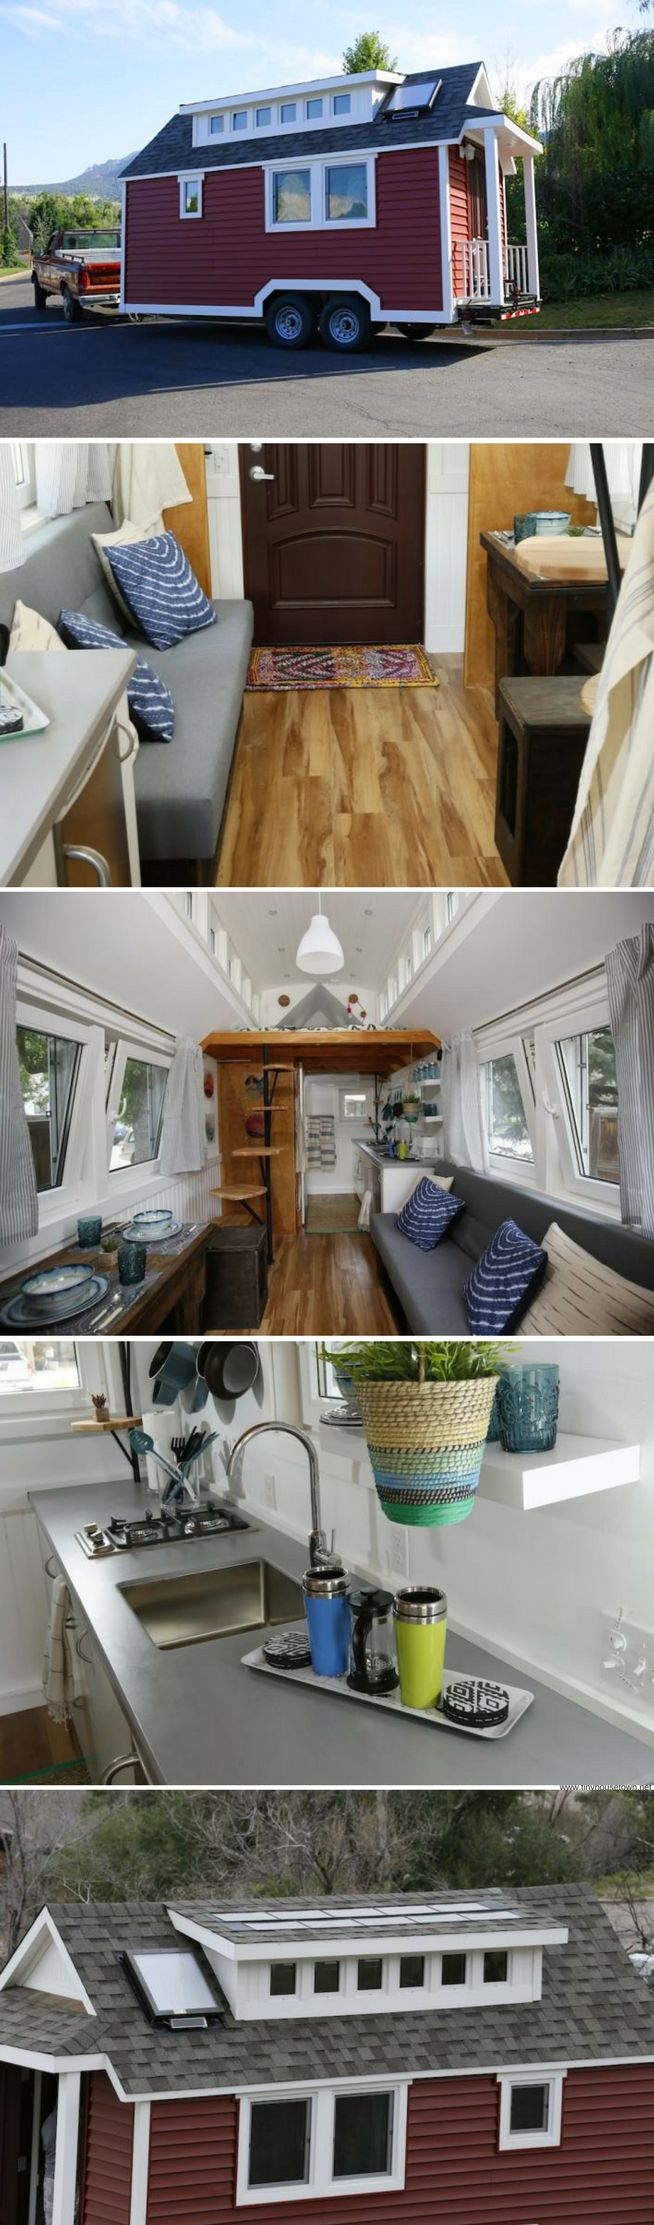 A tiny house made of plastic!